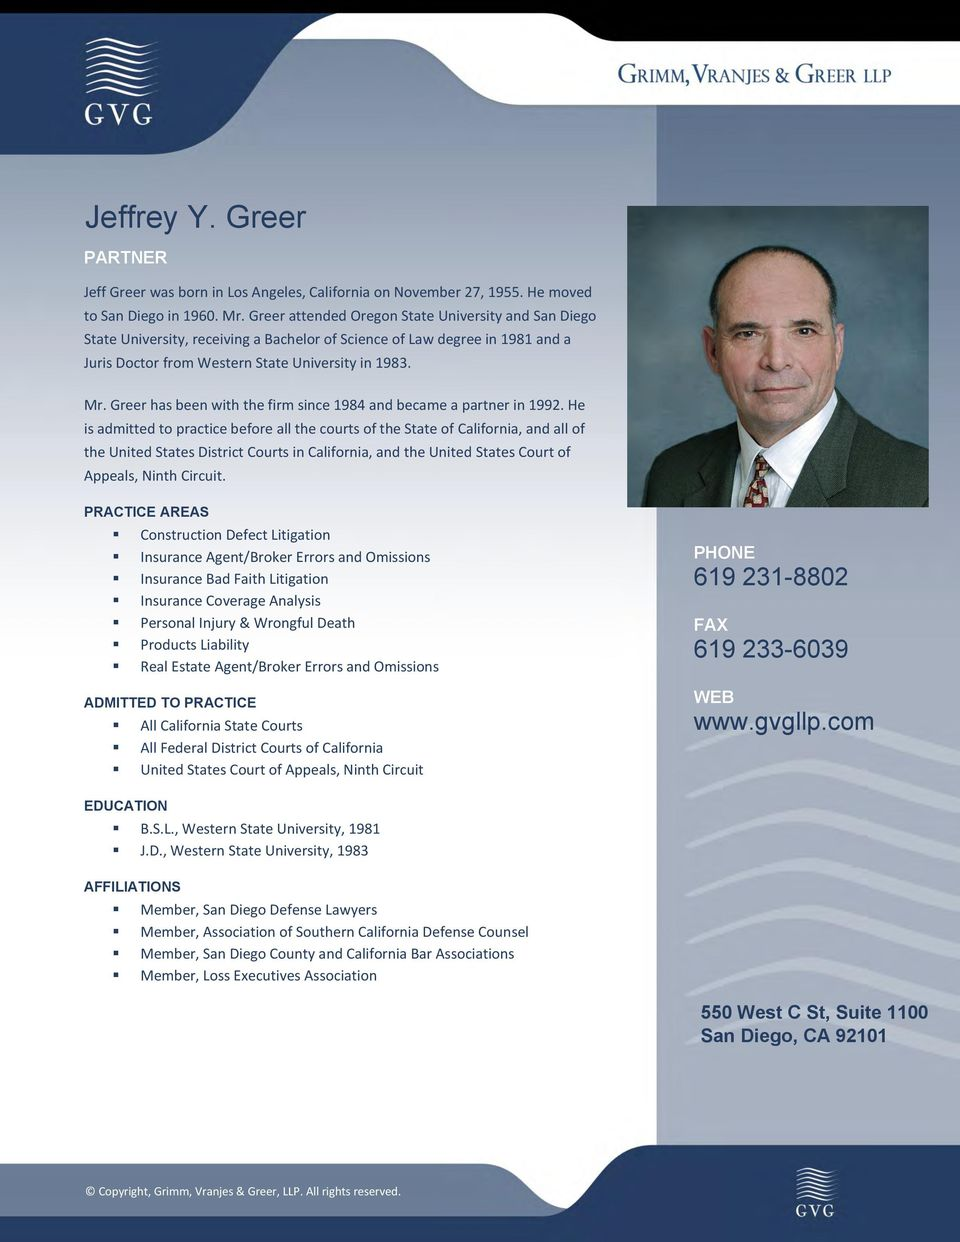 Greer has been with the firm since 1984 and became a partner in 1992.